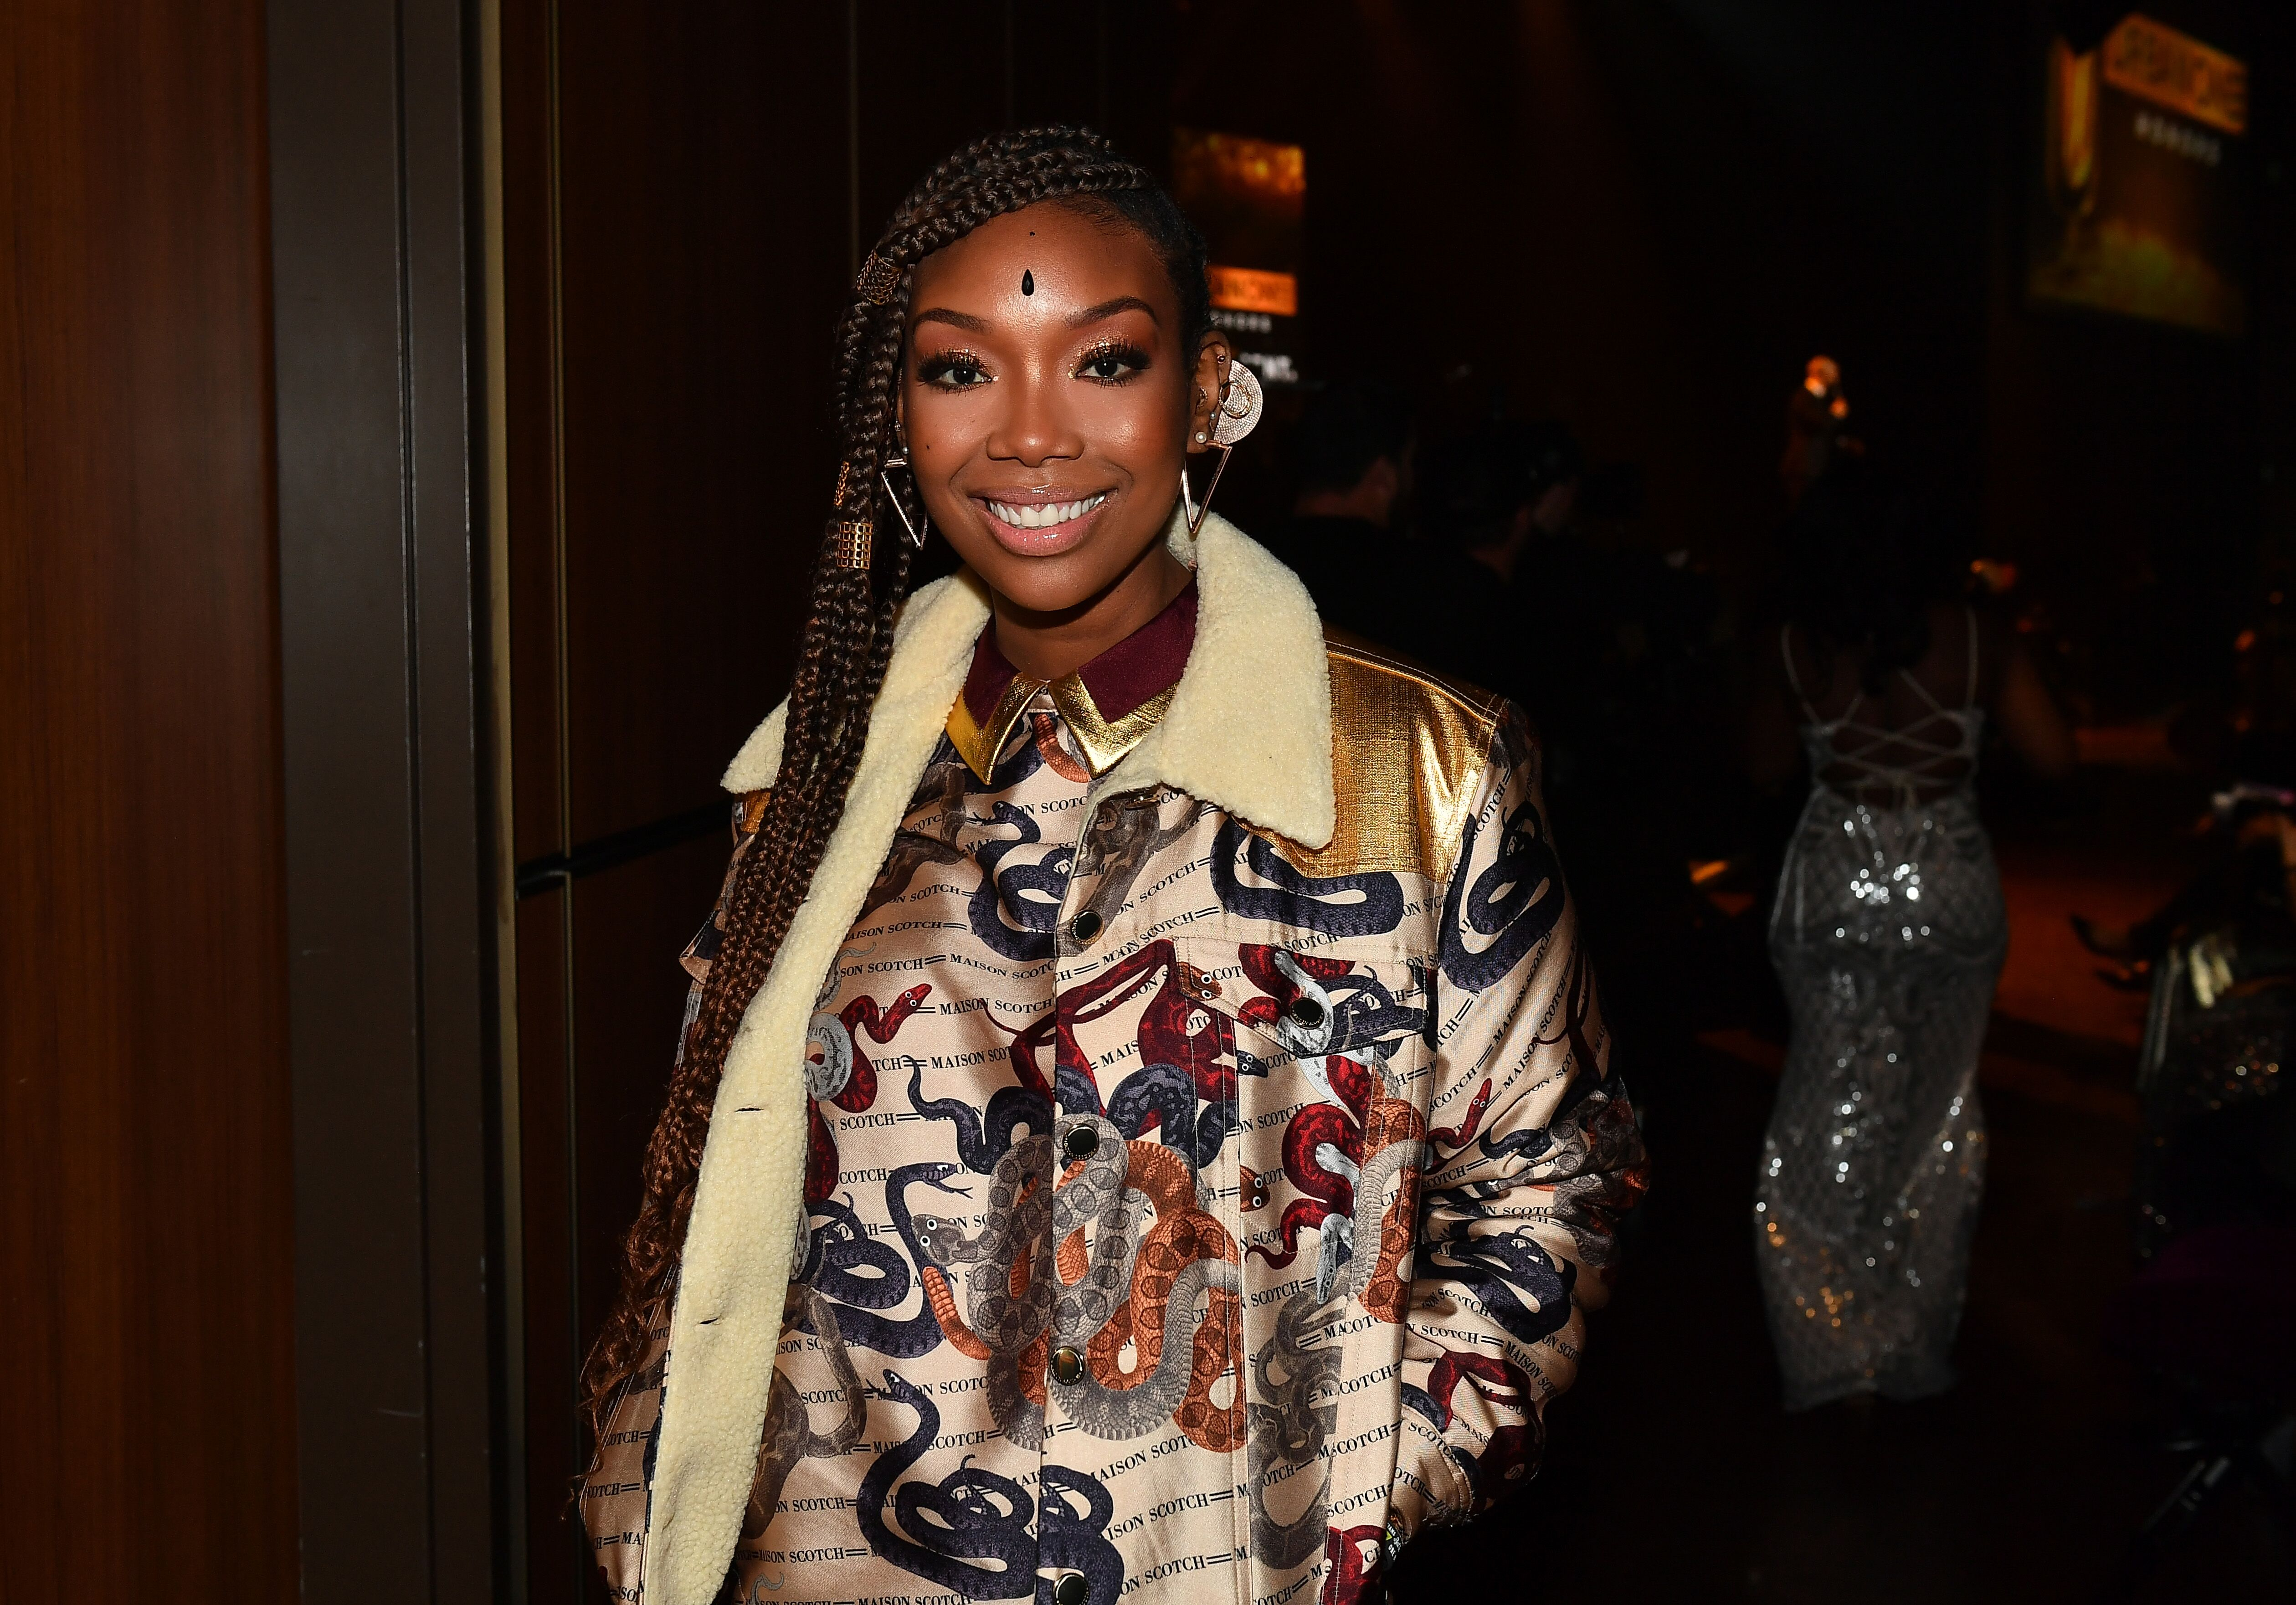 Singer Brandy attends 2019 Urban One Honors at MGM National Harbor on December 05, 2019 | Photo: Getty Images